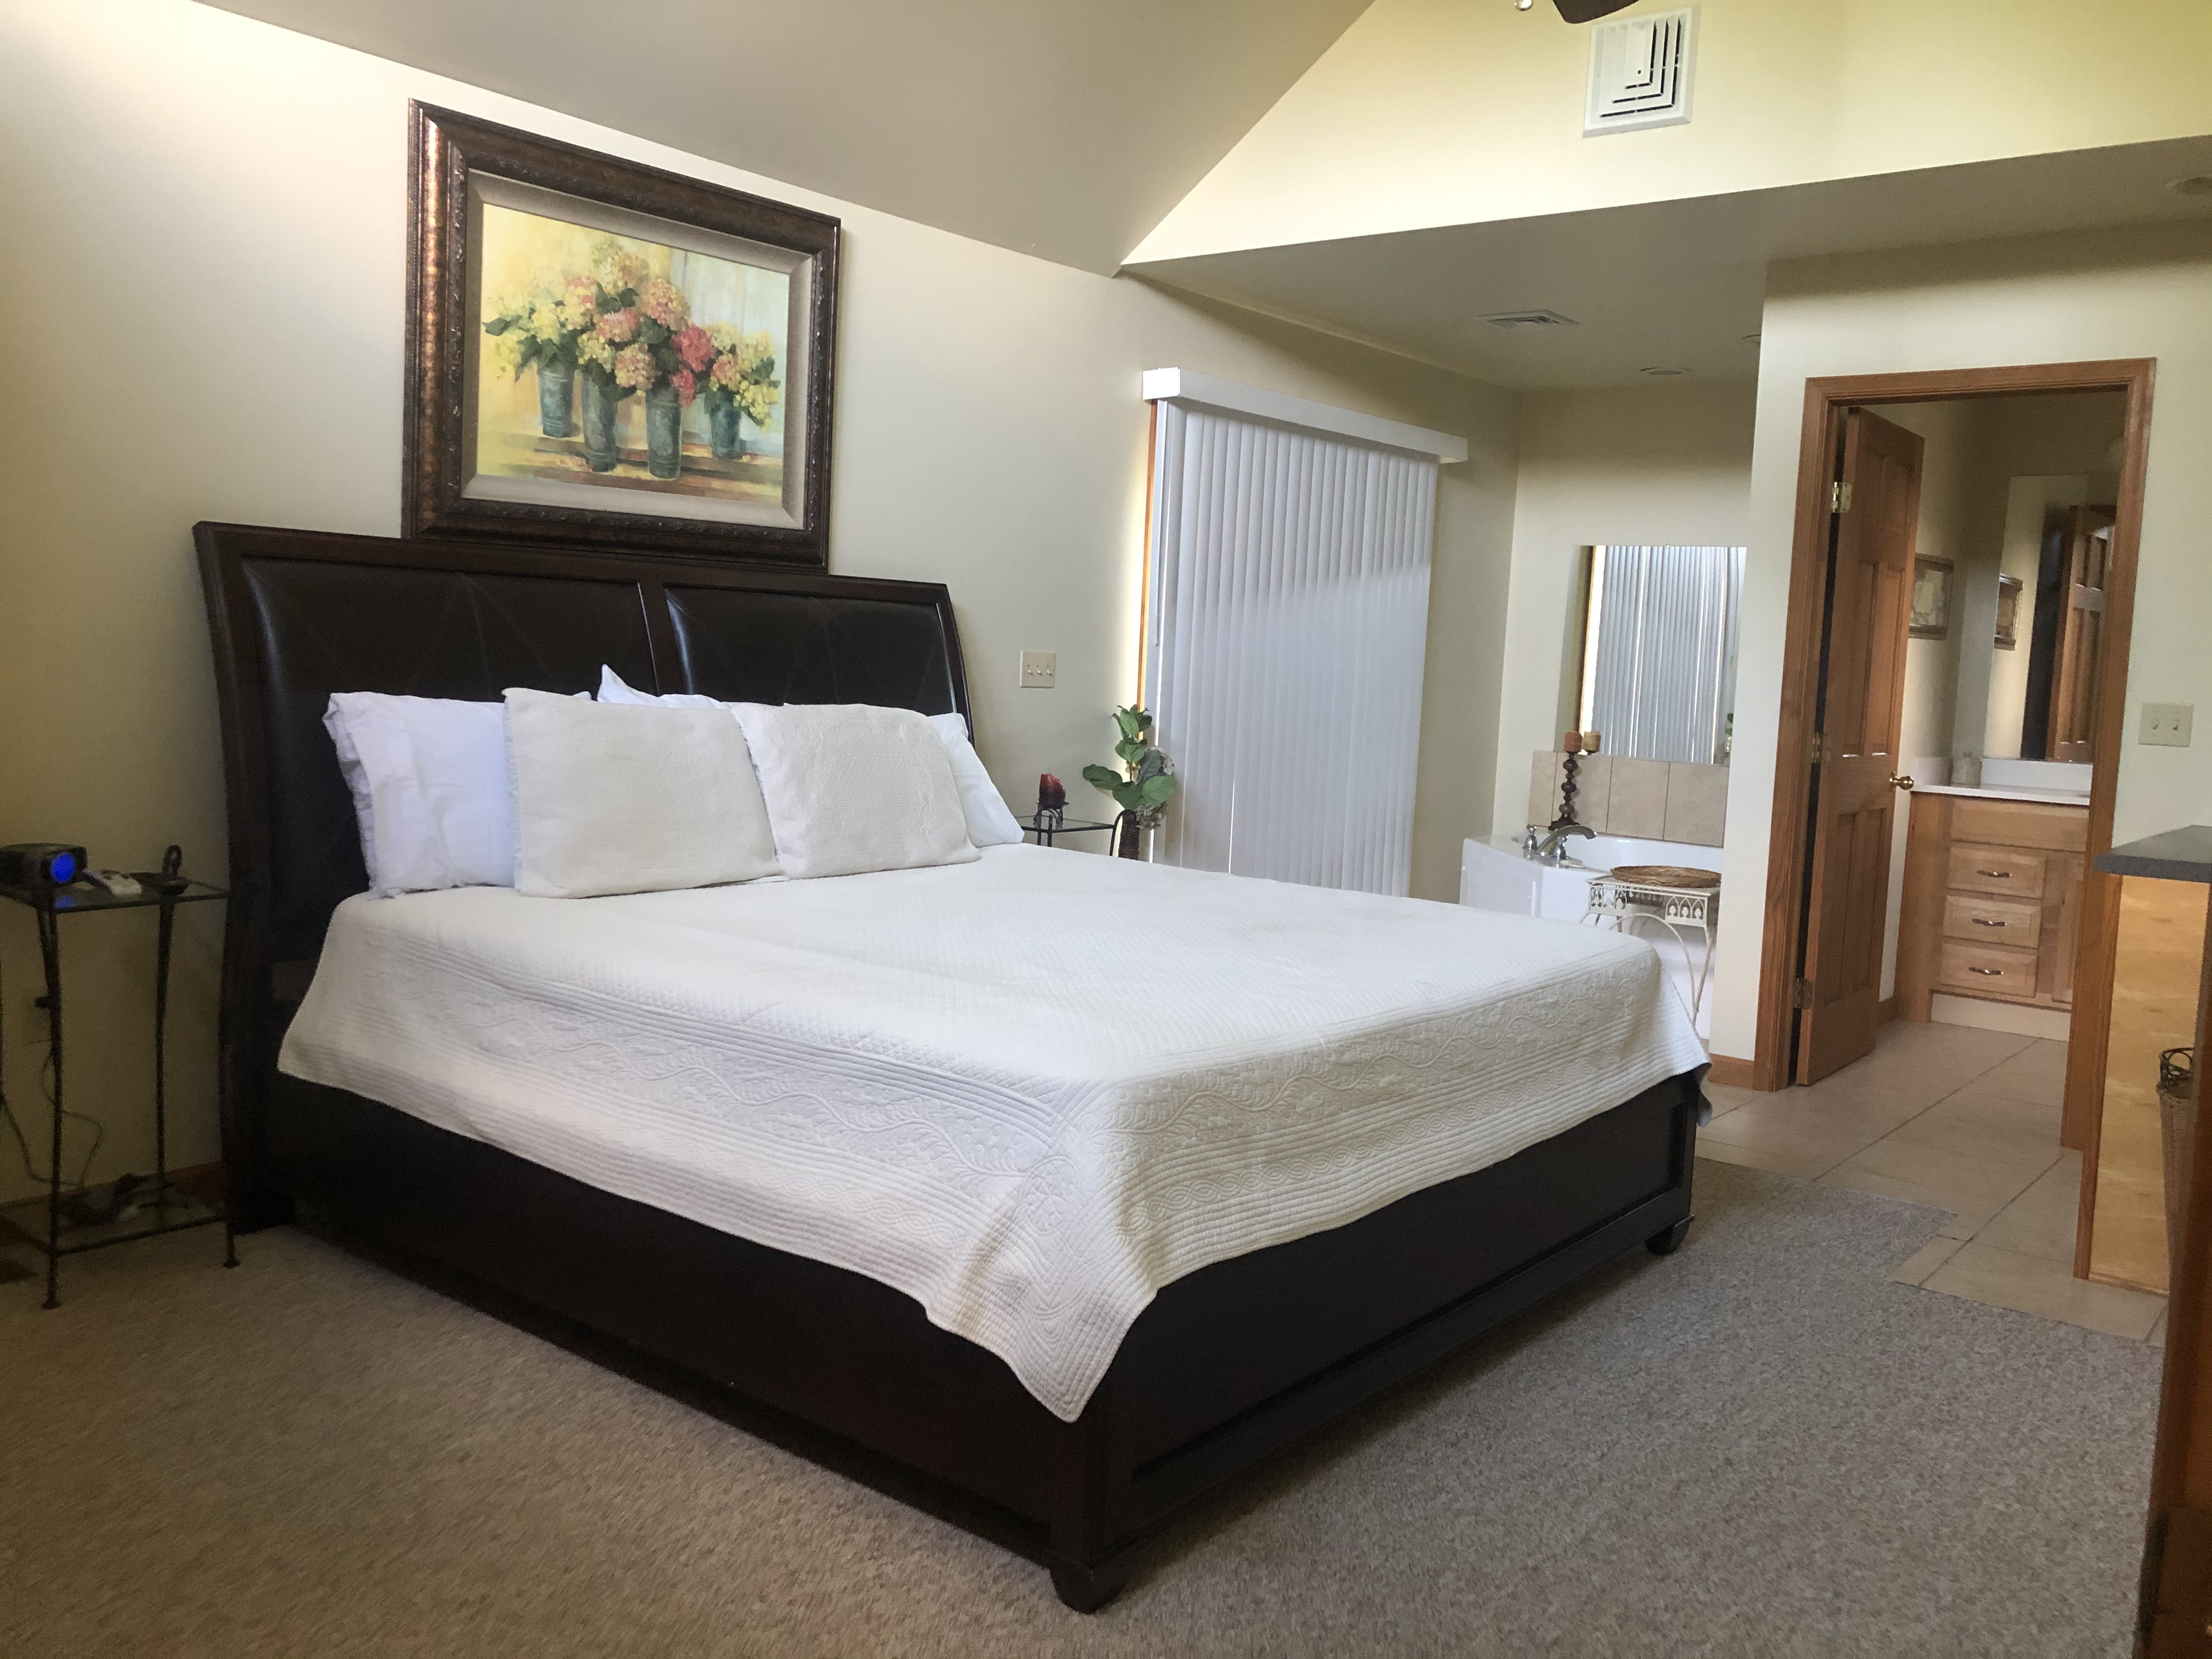 2 Bed / 2 Bath Master Suite